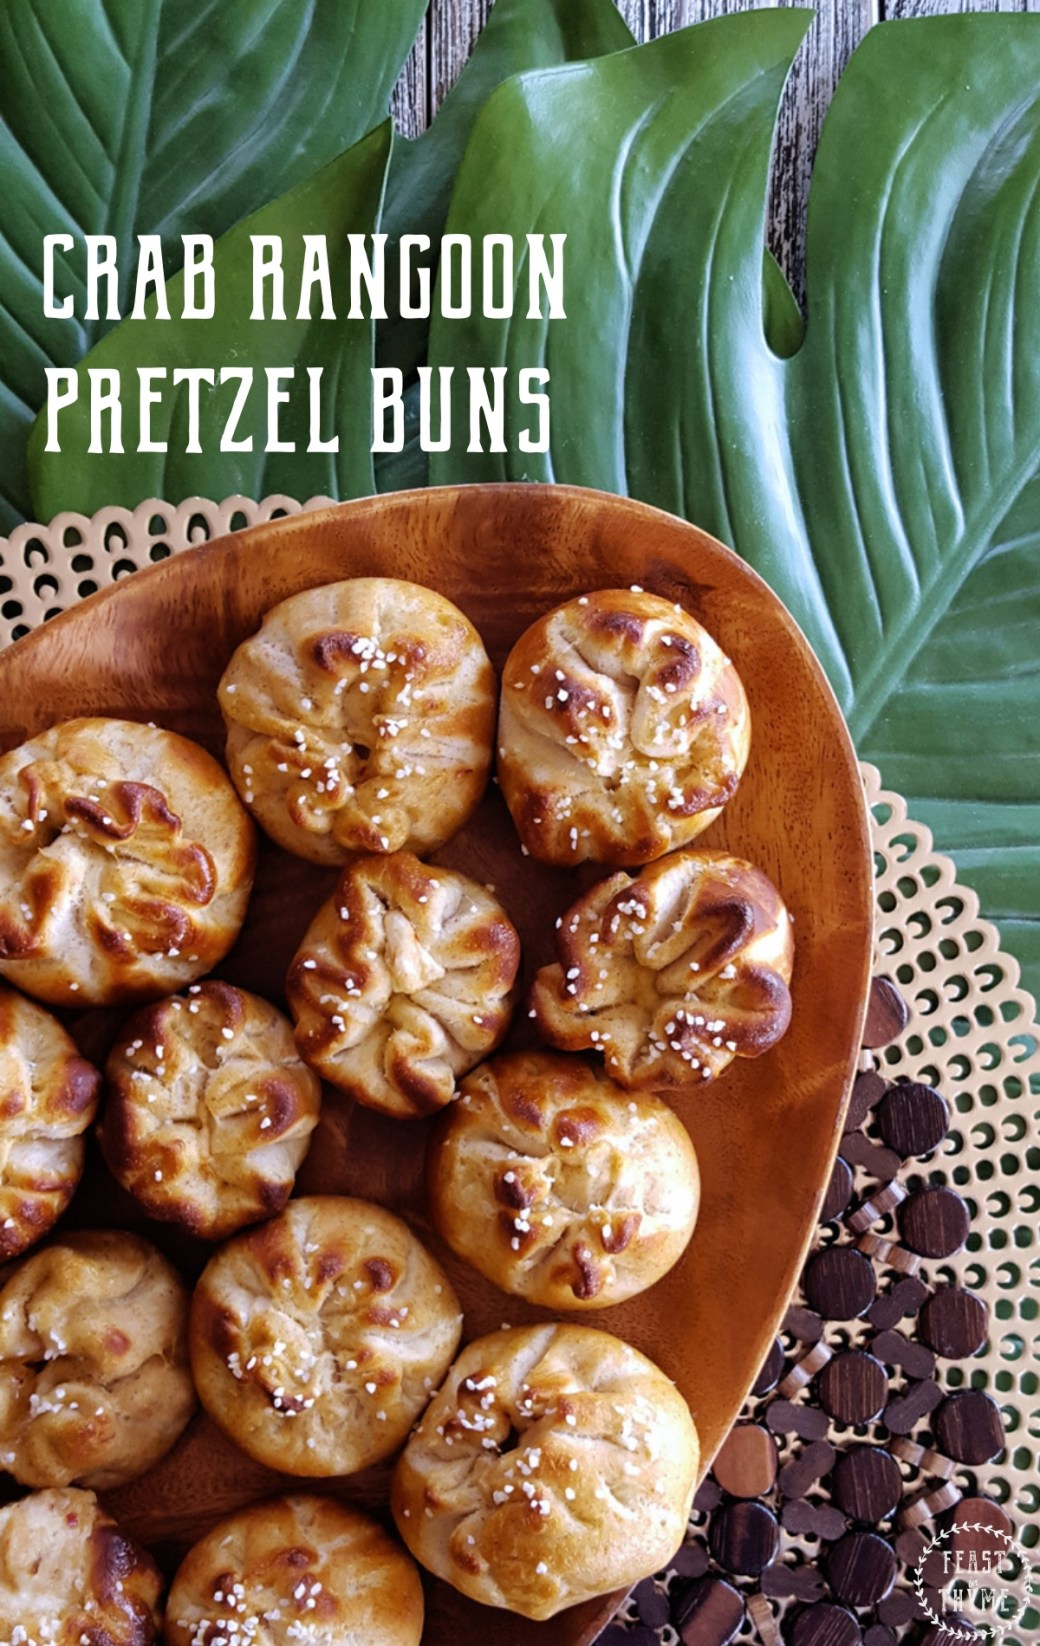 Crab Rangoon Pretzel Buns